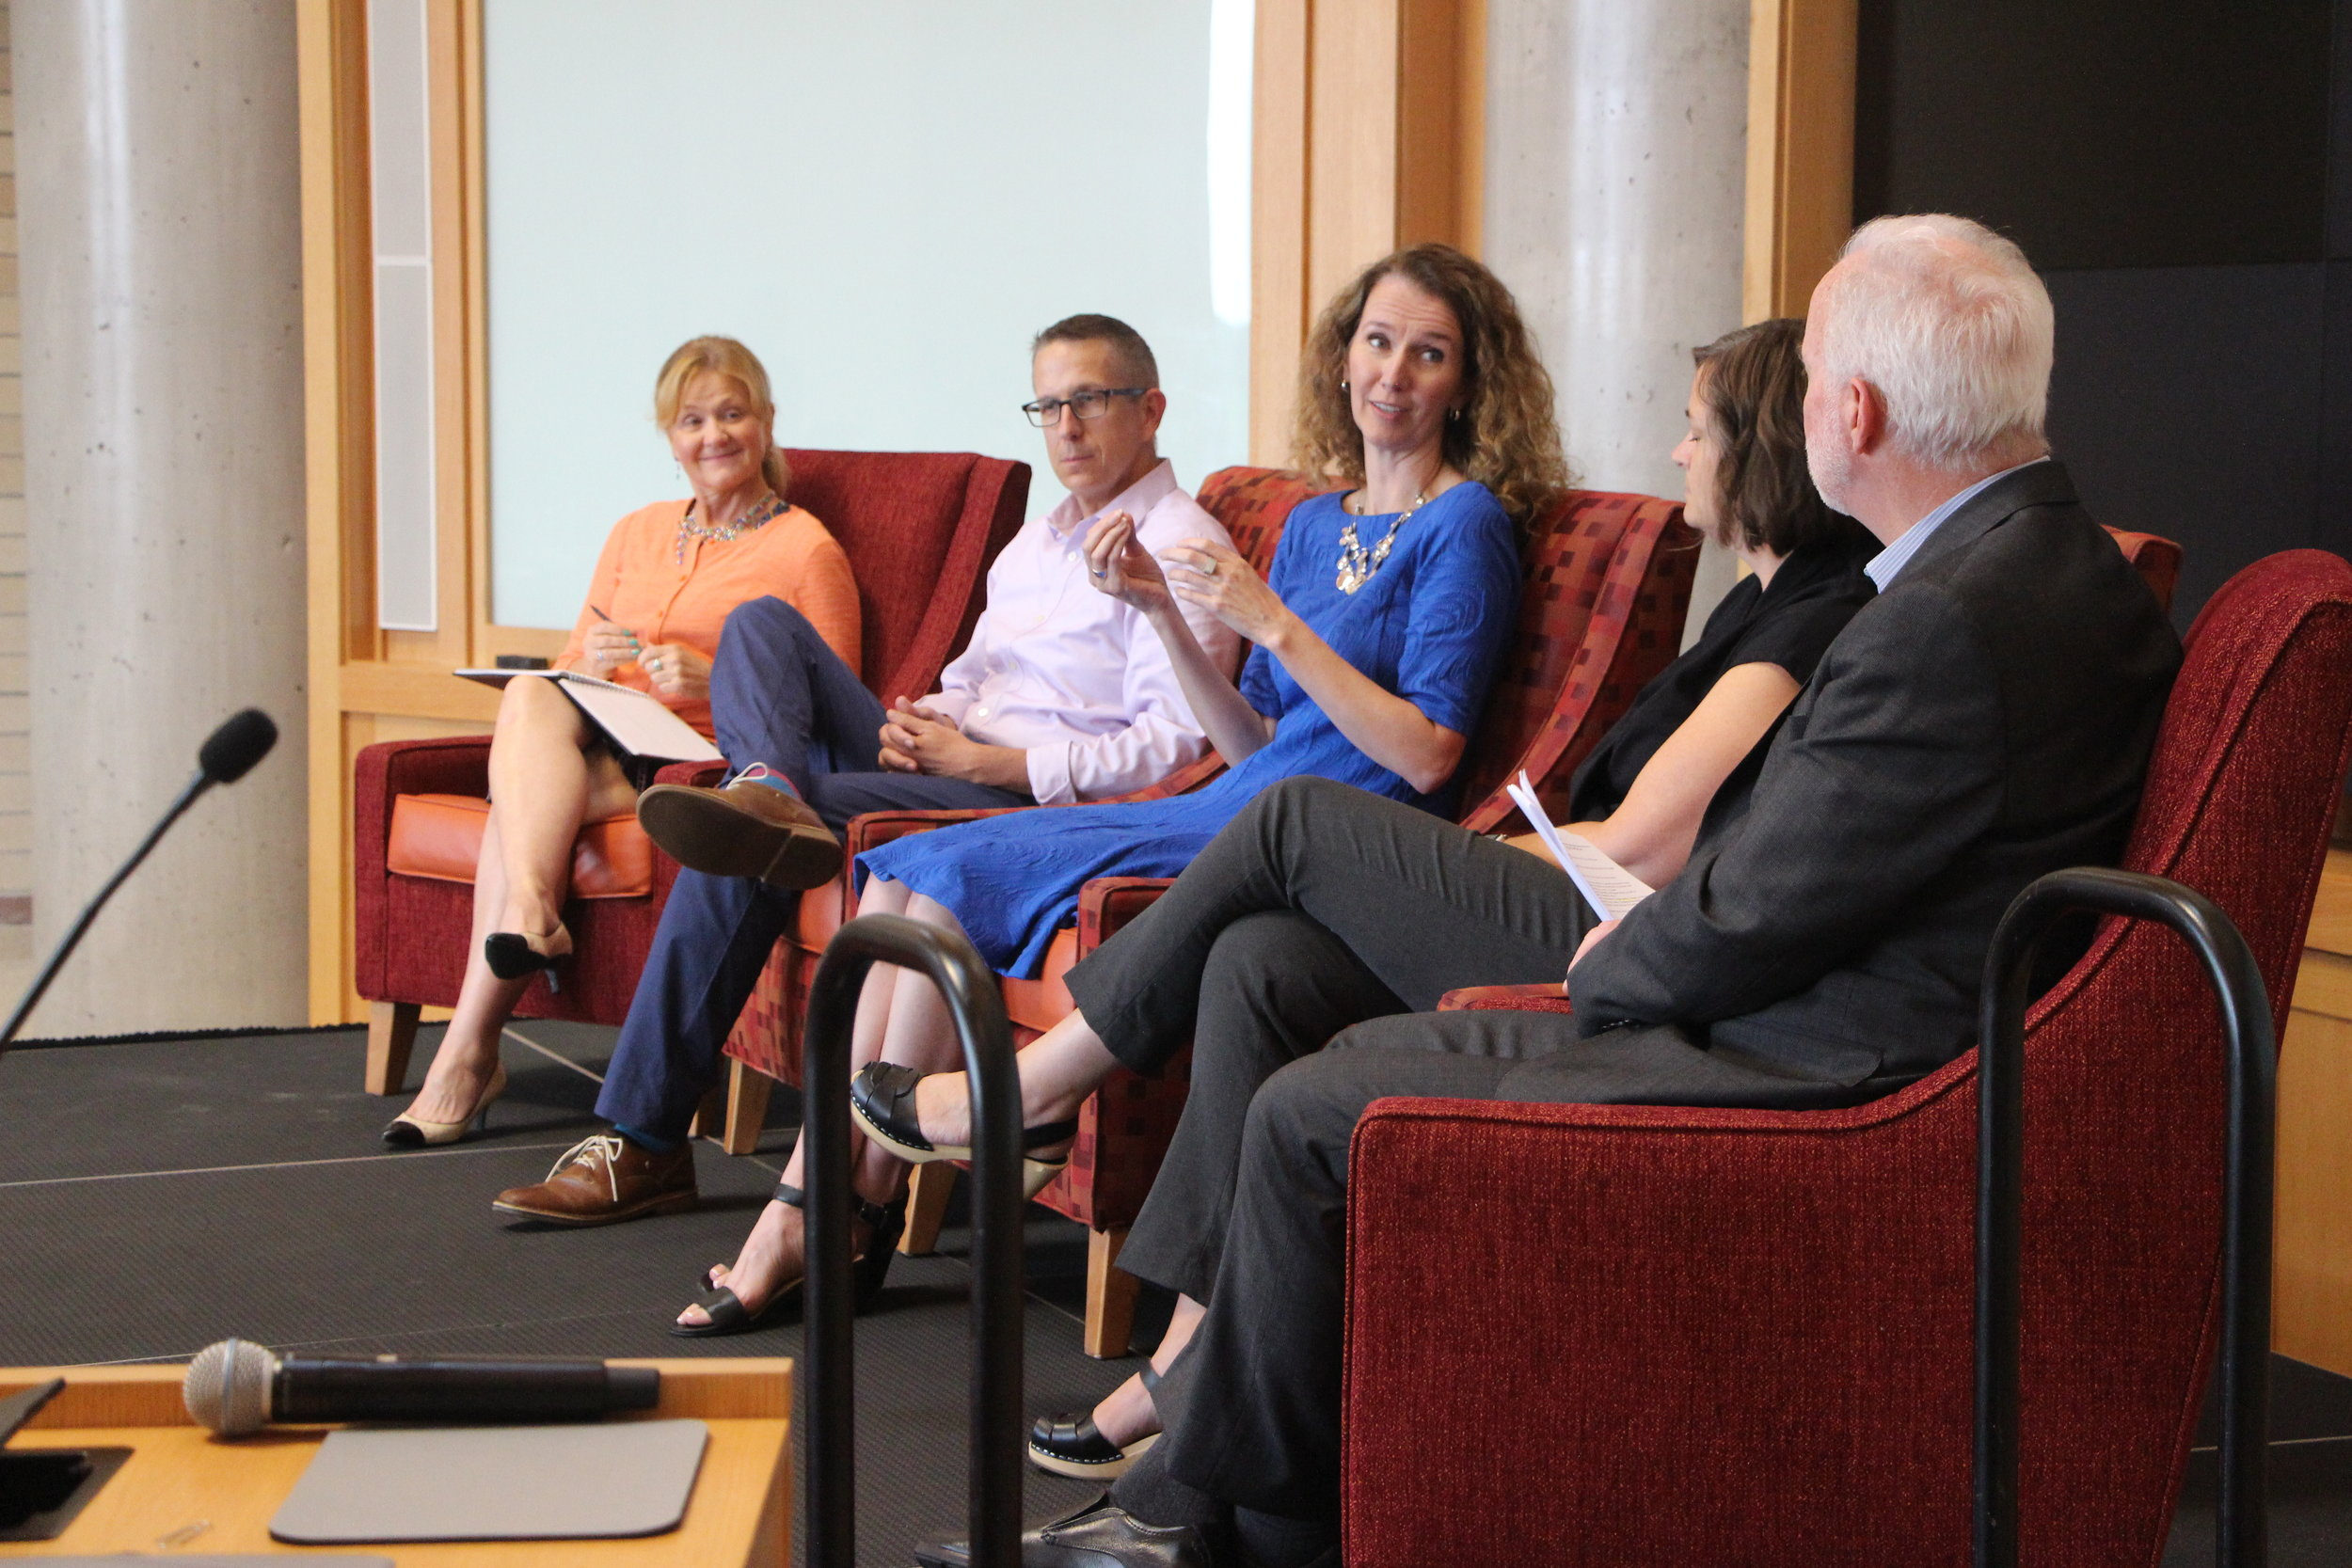 Roxane White (Colorado Media Project), Eric Gorski (Chalkbeat), and Laura Frank (Rocky Mountain PBS) converse with special guest Molly de Aguiar (News Integrity Initiative) and moderator Tom Gougeon (Gates Family Foundation) at an Aug. 22 public forum held at Denver University.